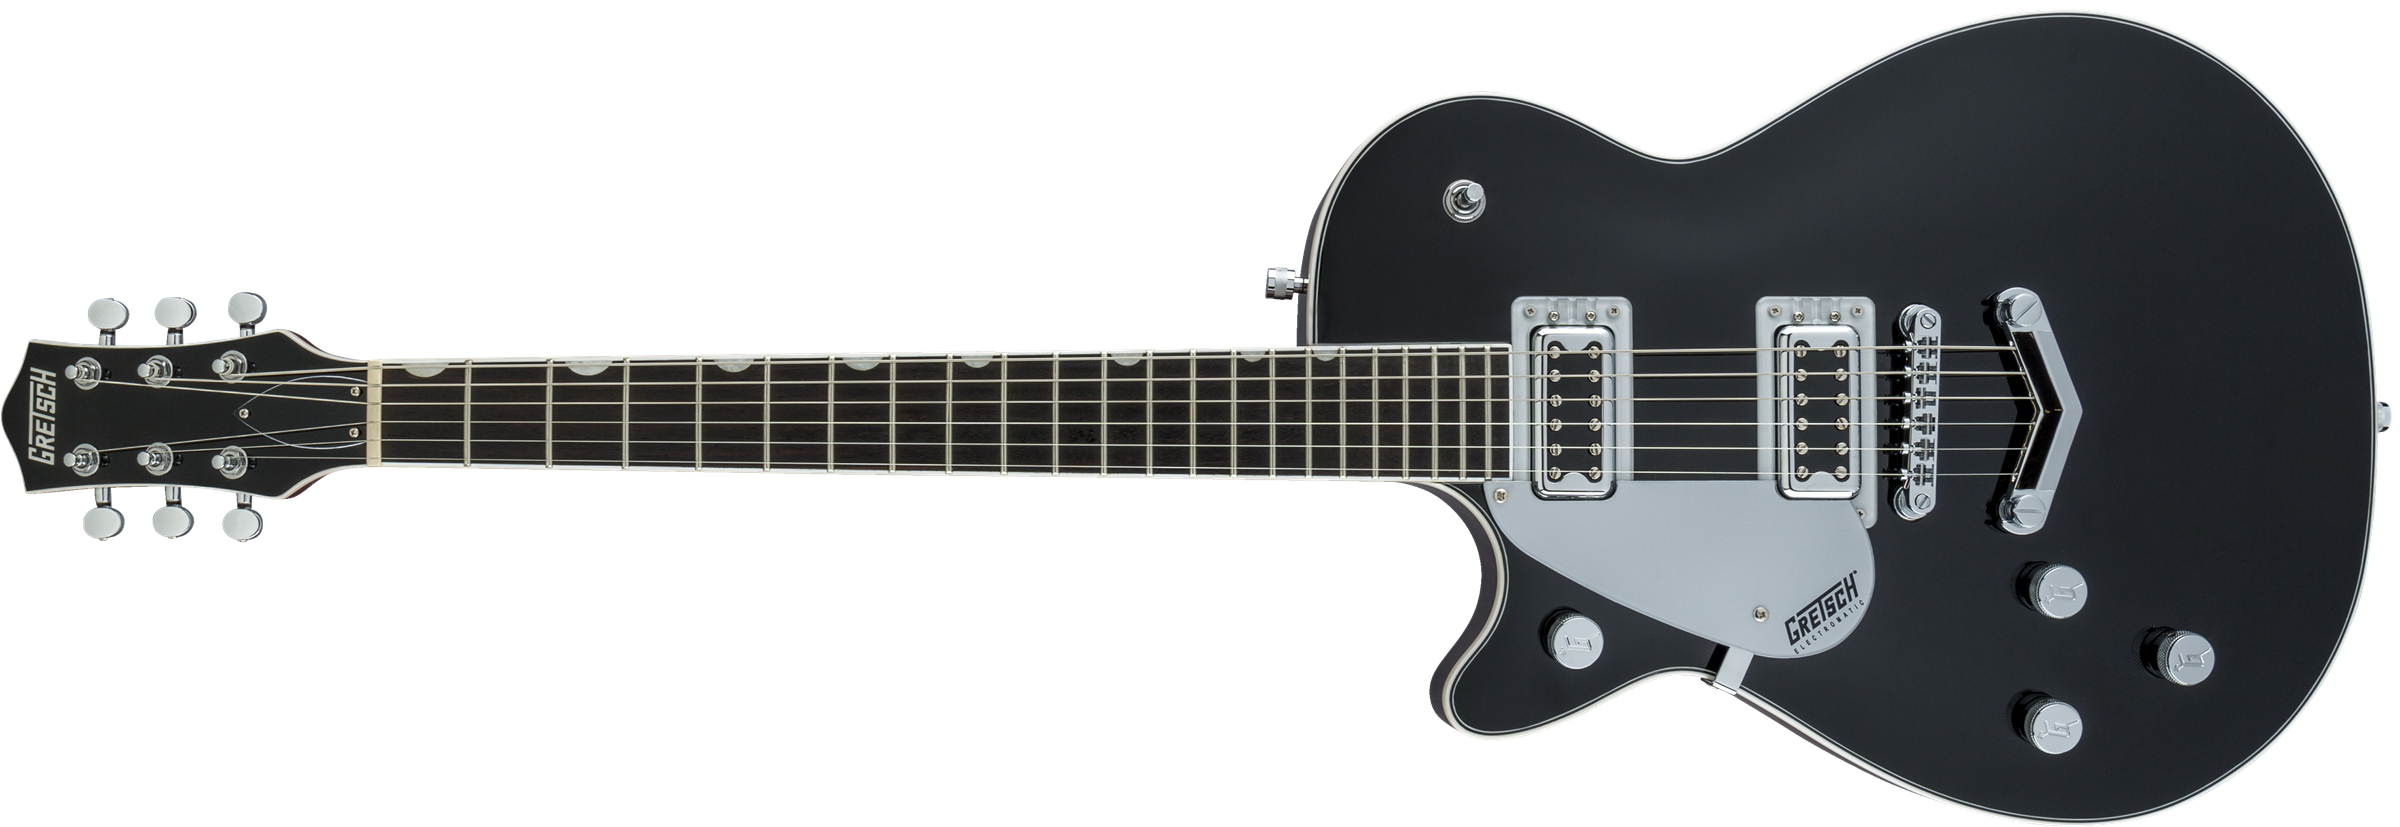 GRETSCH G5230LH Electromatic Jet FT Single-Cut with V-Stoptail, Left-Handed, Black Walnut Fingerboard, Black